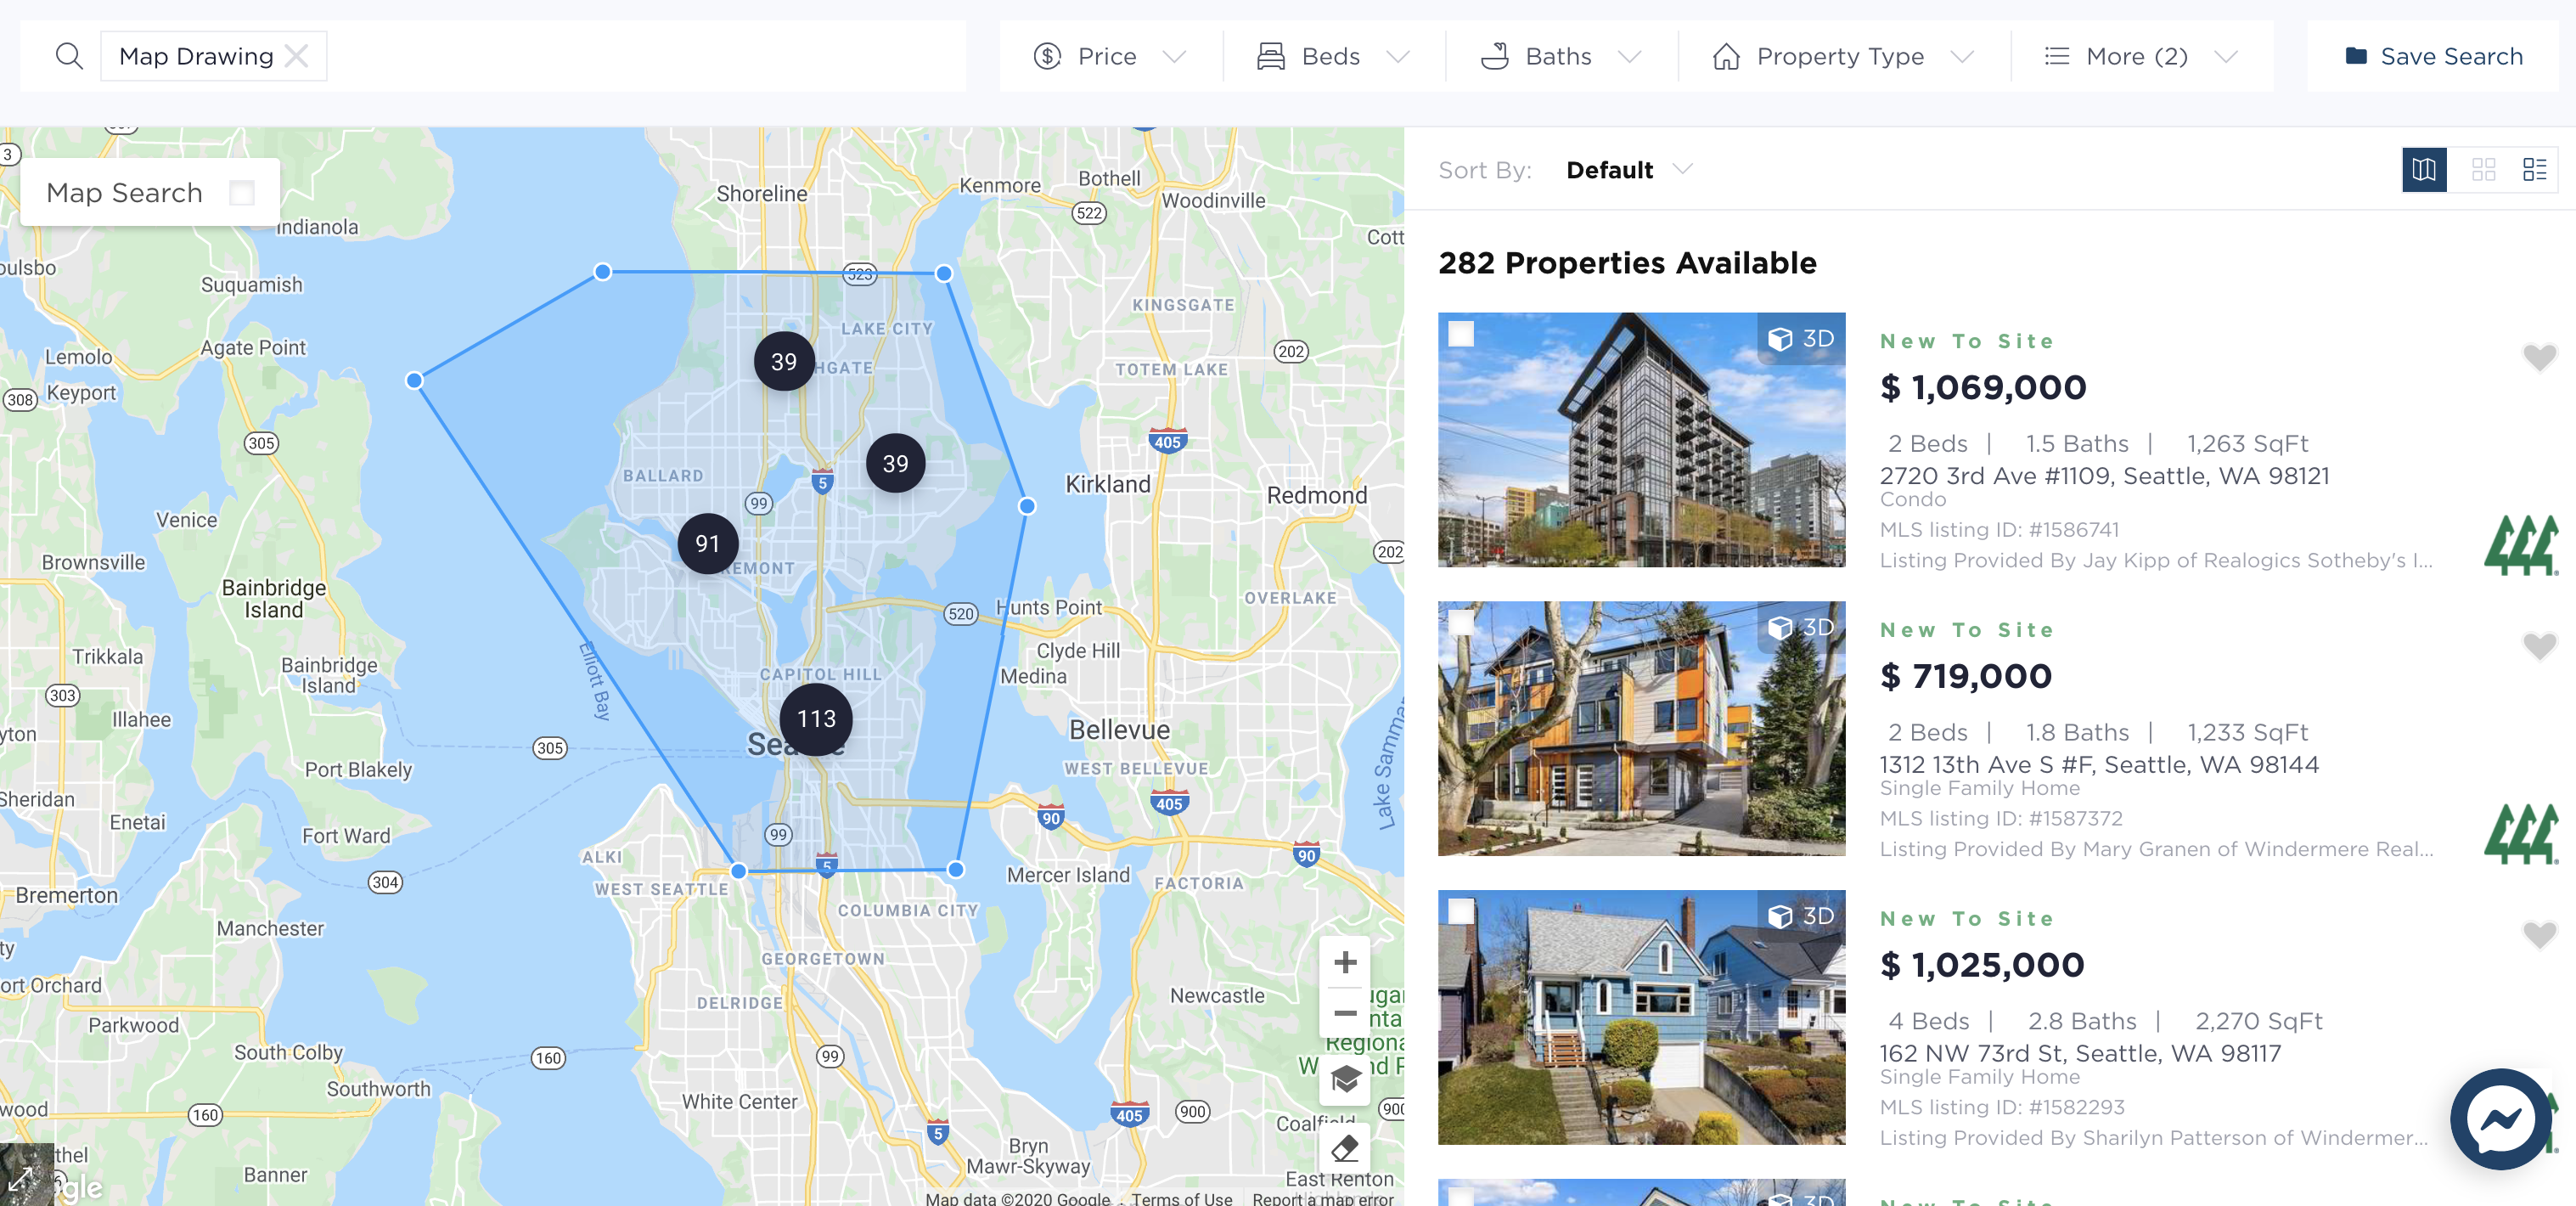 282 Homes On The Market With Virtual & 3D Tours!